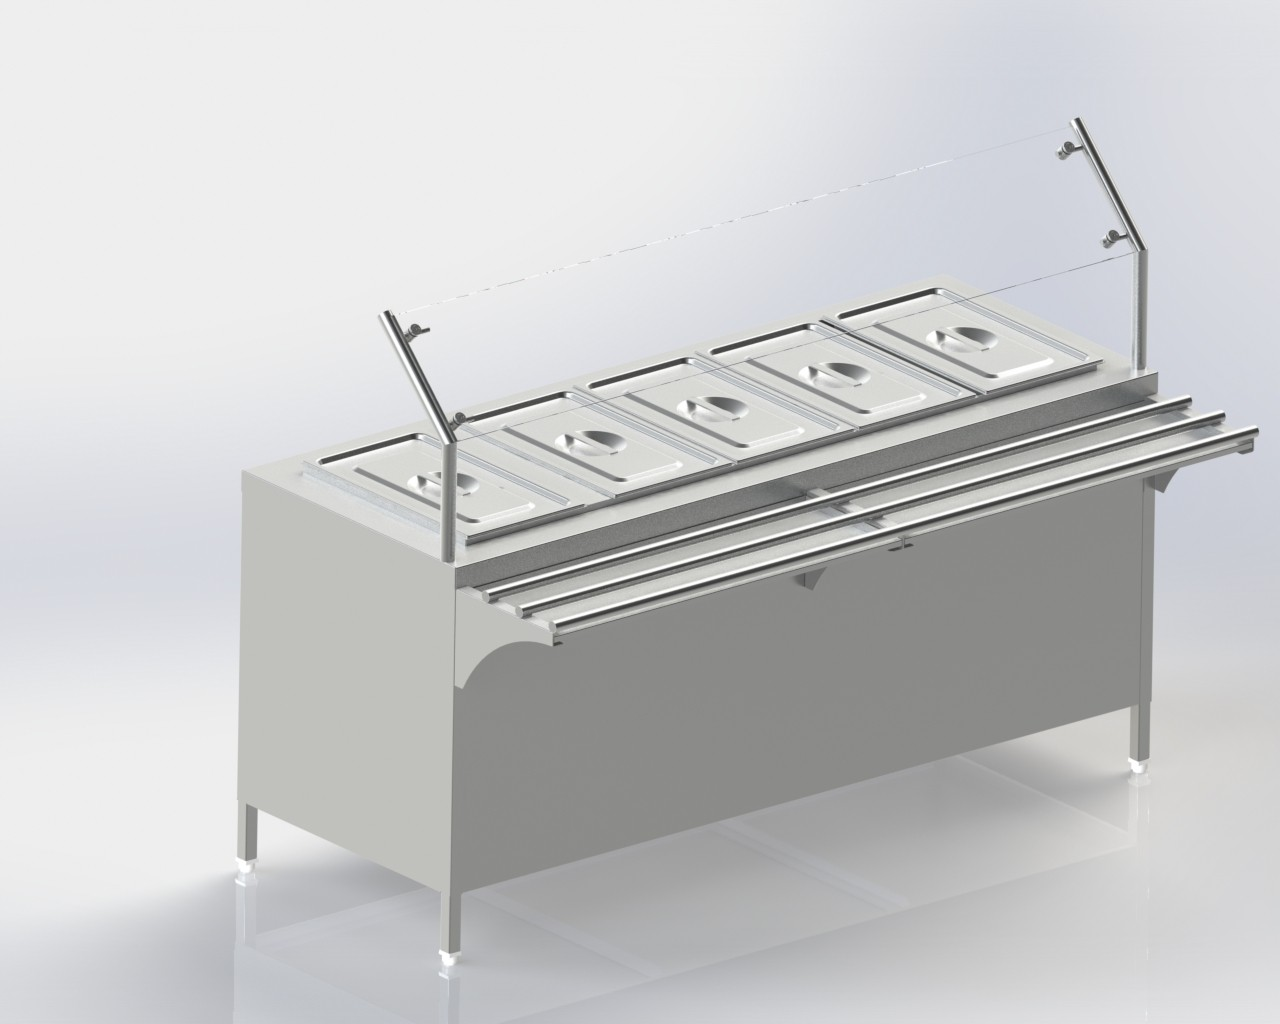 Bain Marie for keeping food hot,cold or at room temperature